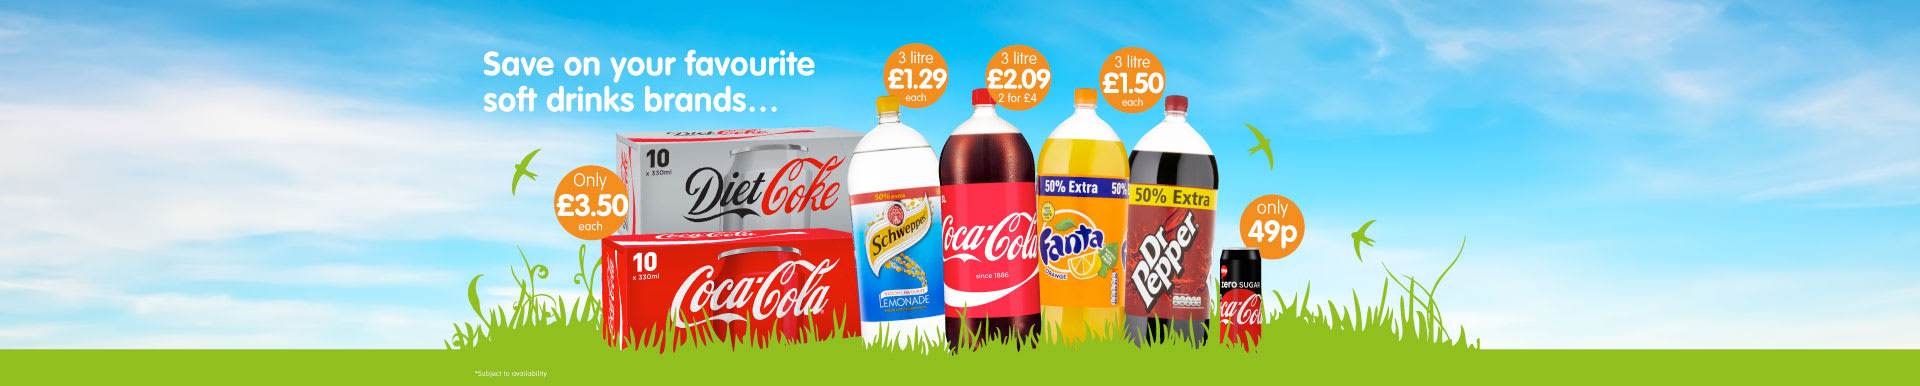 Save on Coke, Fanta, Lemonade and Dr Pepper at B&M.